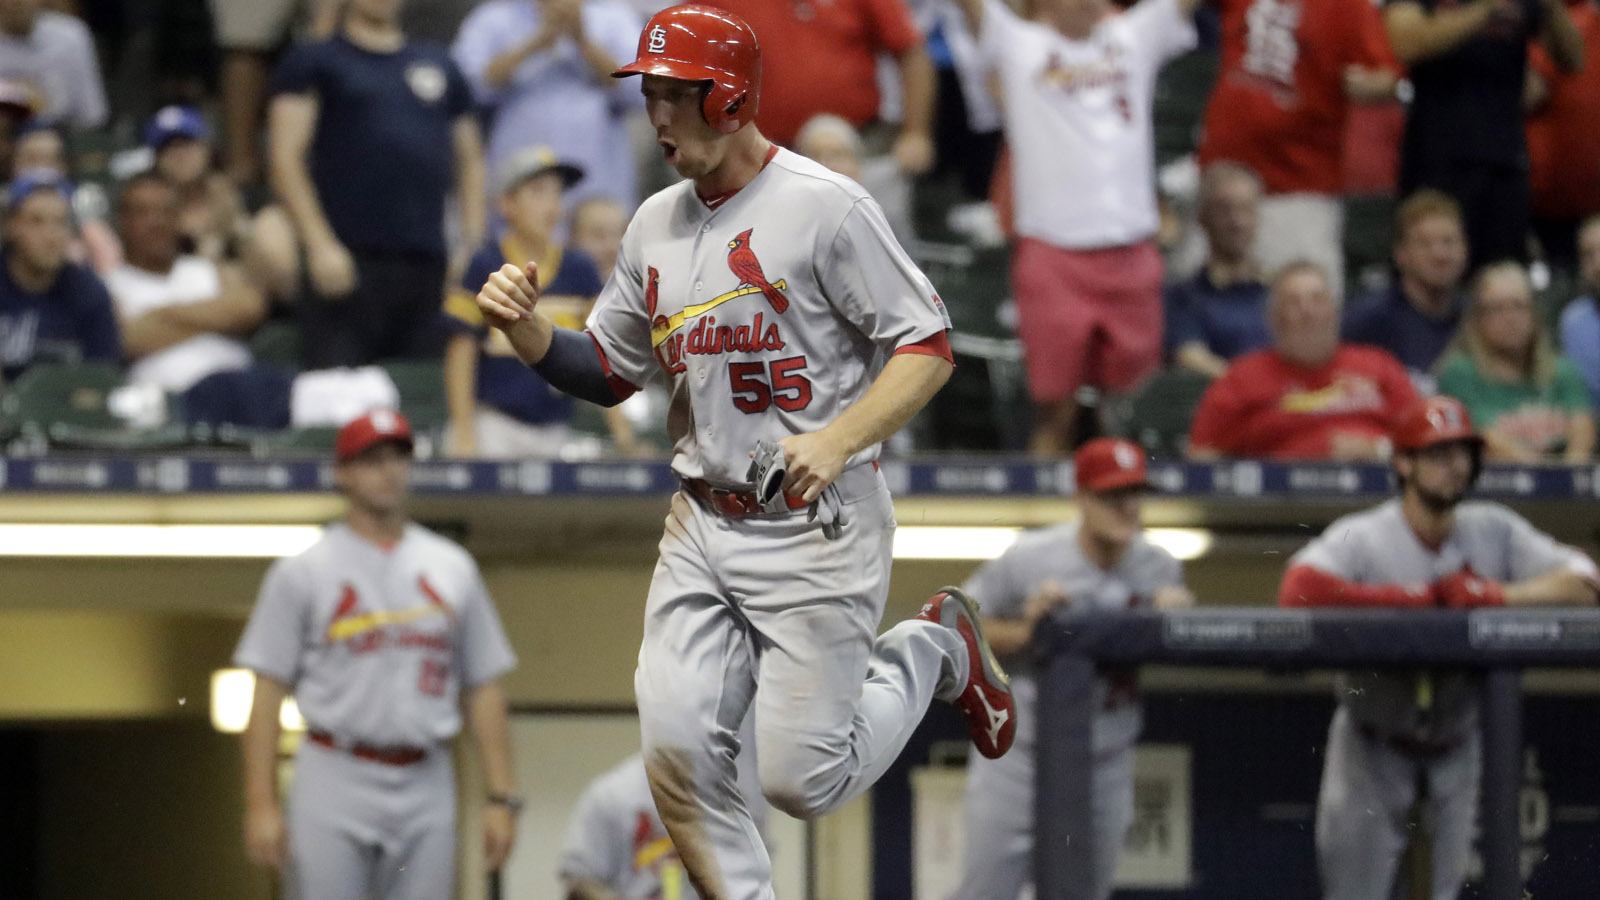 Cardinals come back in ninth, defeat Brewers 6-5